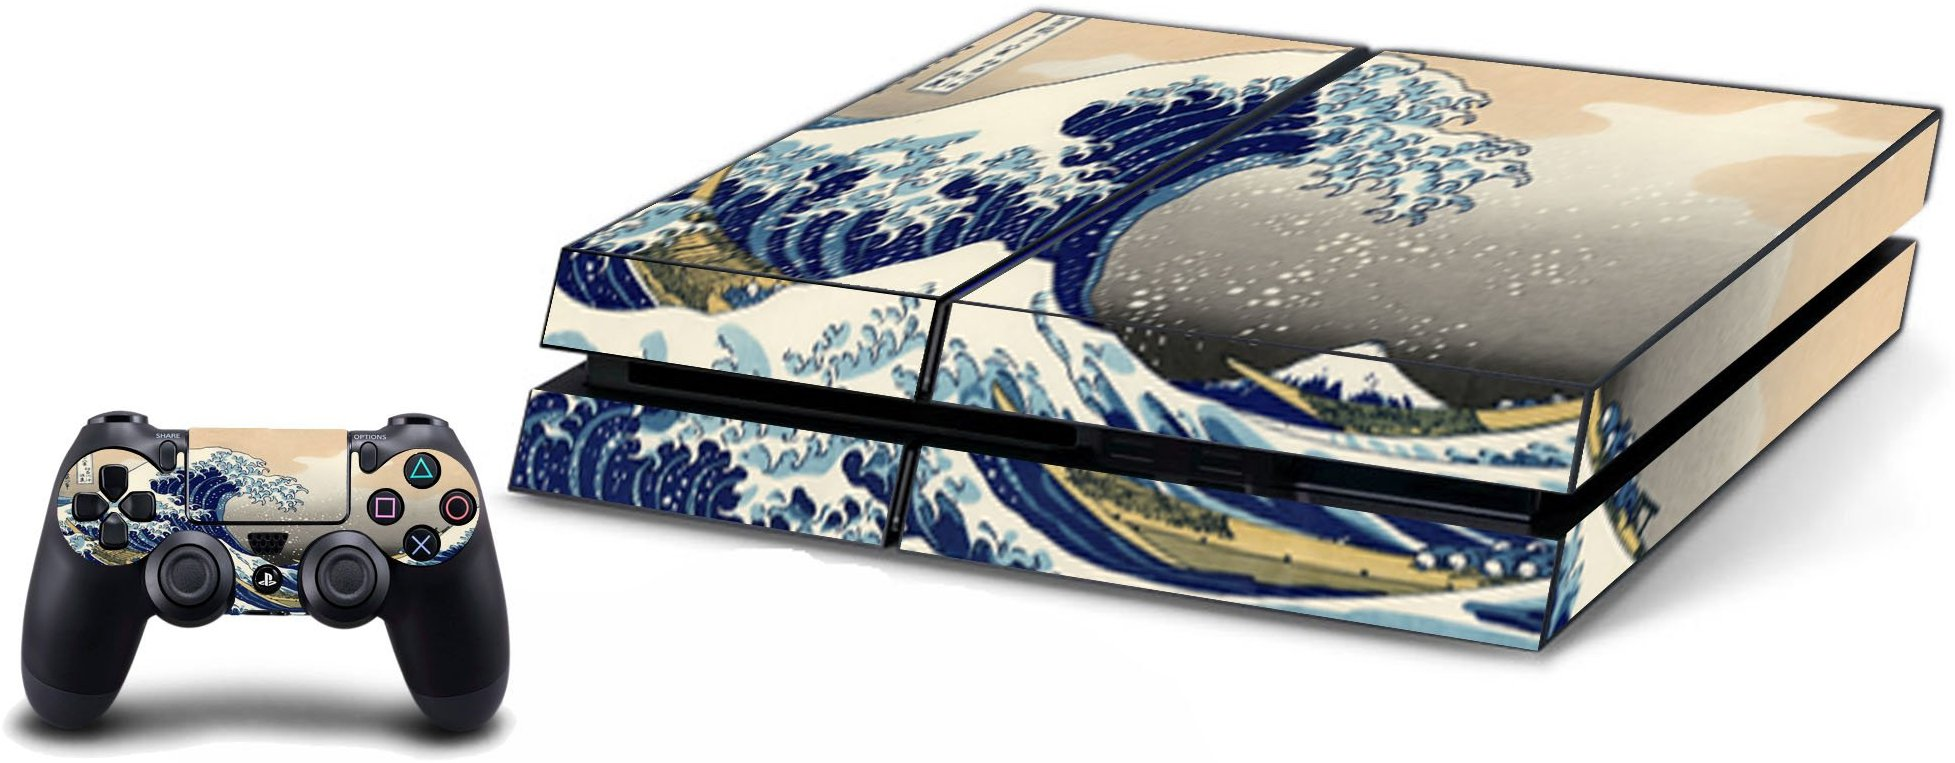 VWAQ The Great Wave Off Kanagawa Playstation PS4 Skin Console+Controller Vinyl Decal - VWAQ Vinyl Wall Art Quotes and Prints